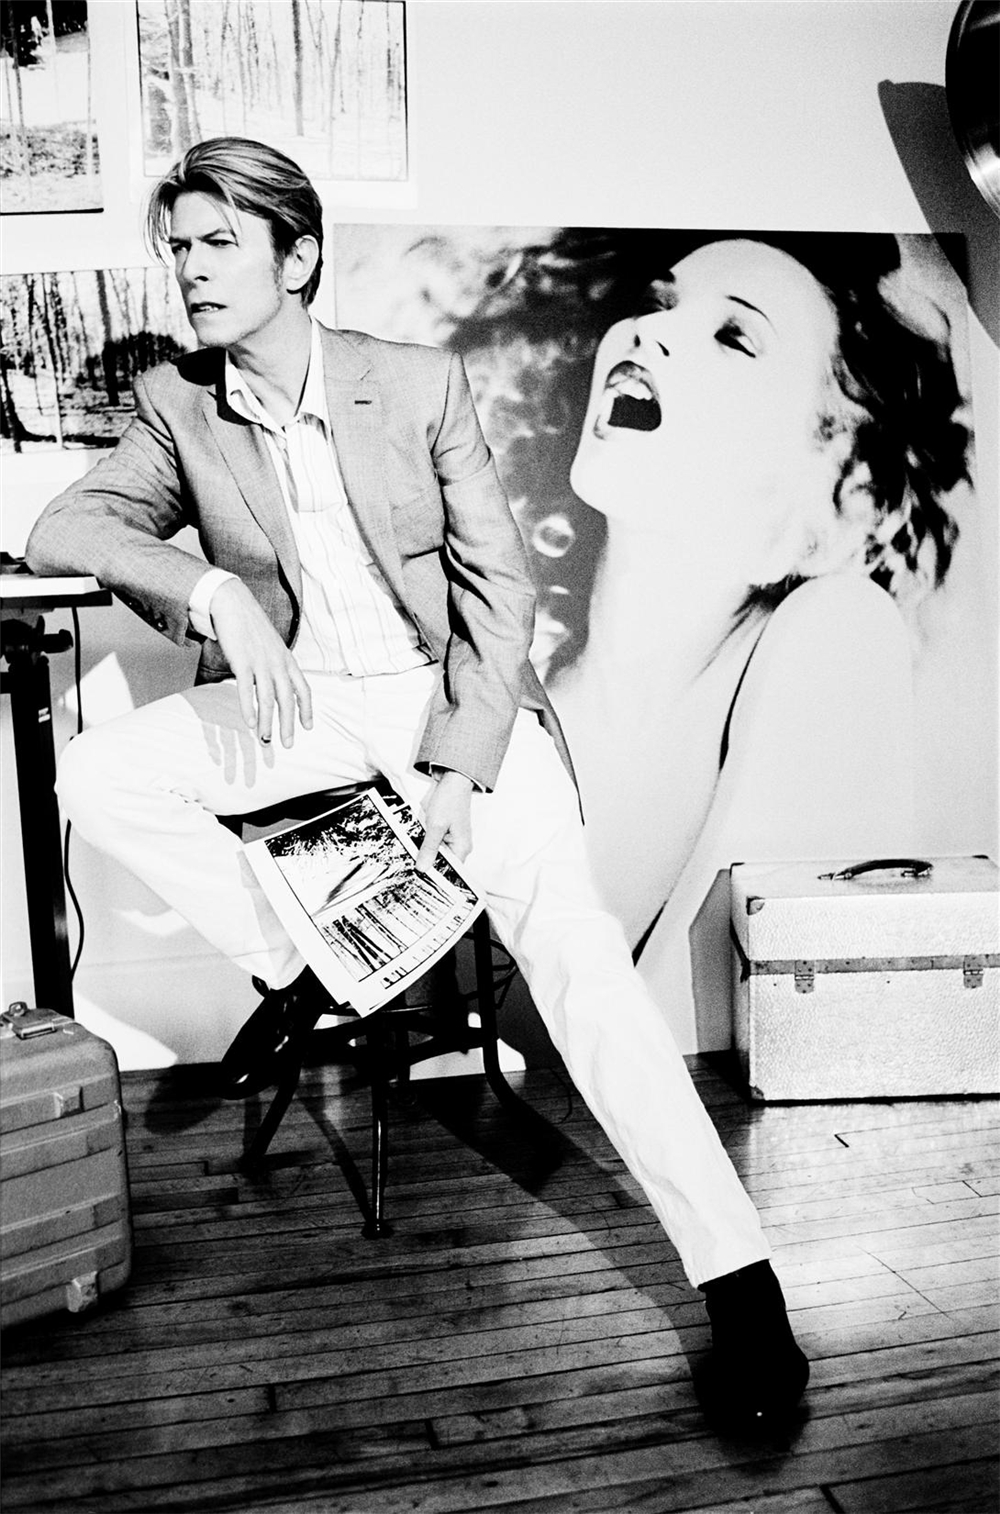 [photo by Ellen von Unwerth, Oct. 2003]